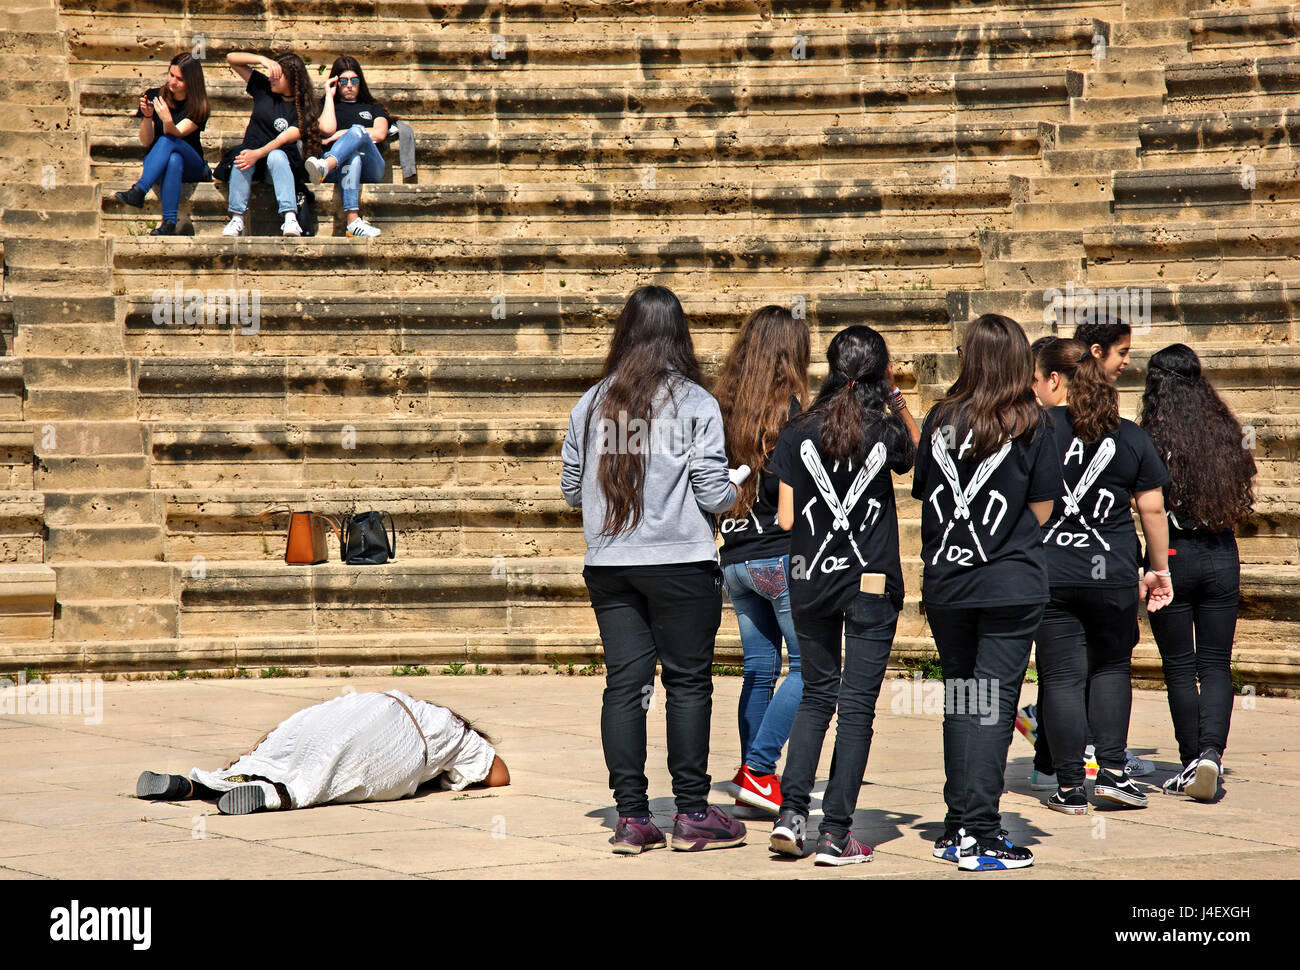 """Students, """"rehearsing"""" at the Roman Odeon in the Archaeological Park of Paphos (UNESCO World Heritage Site) Cyprus. Stock Photo"""